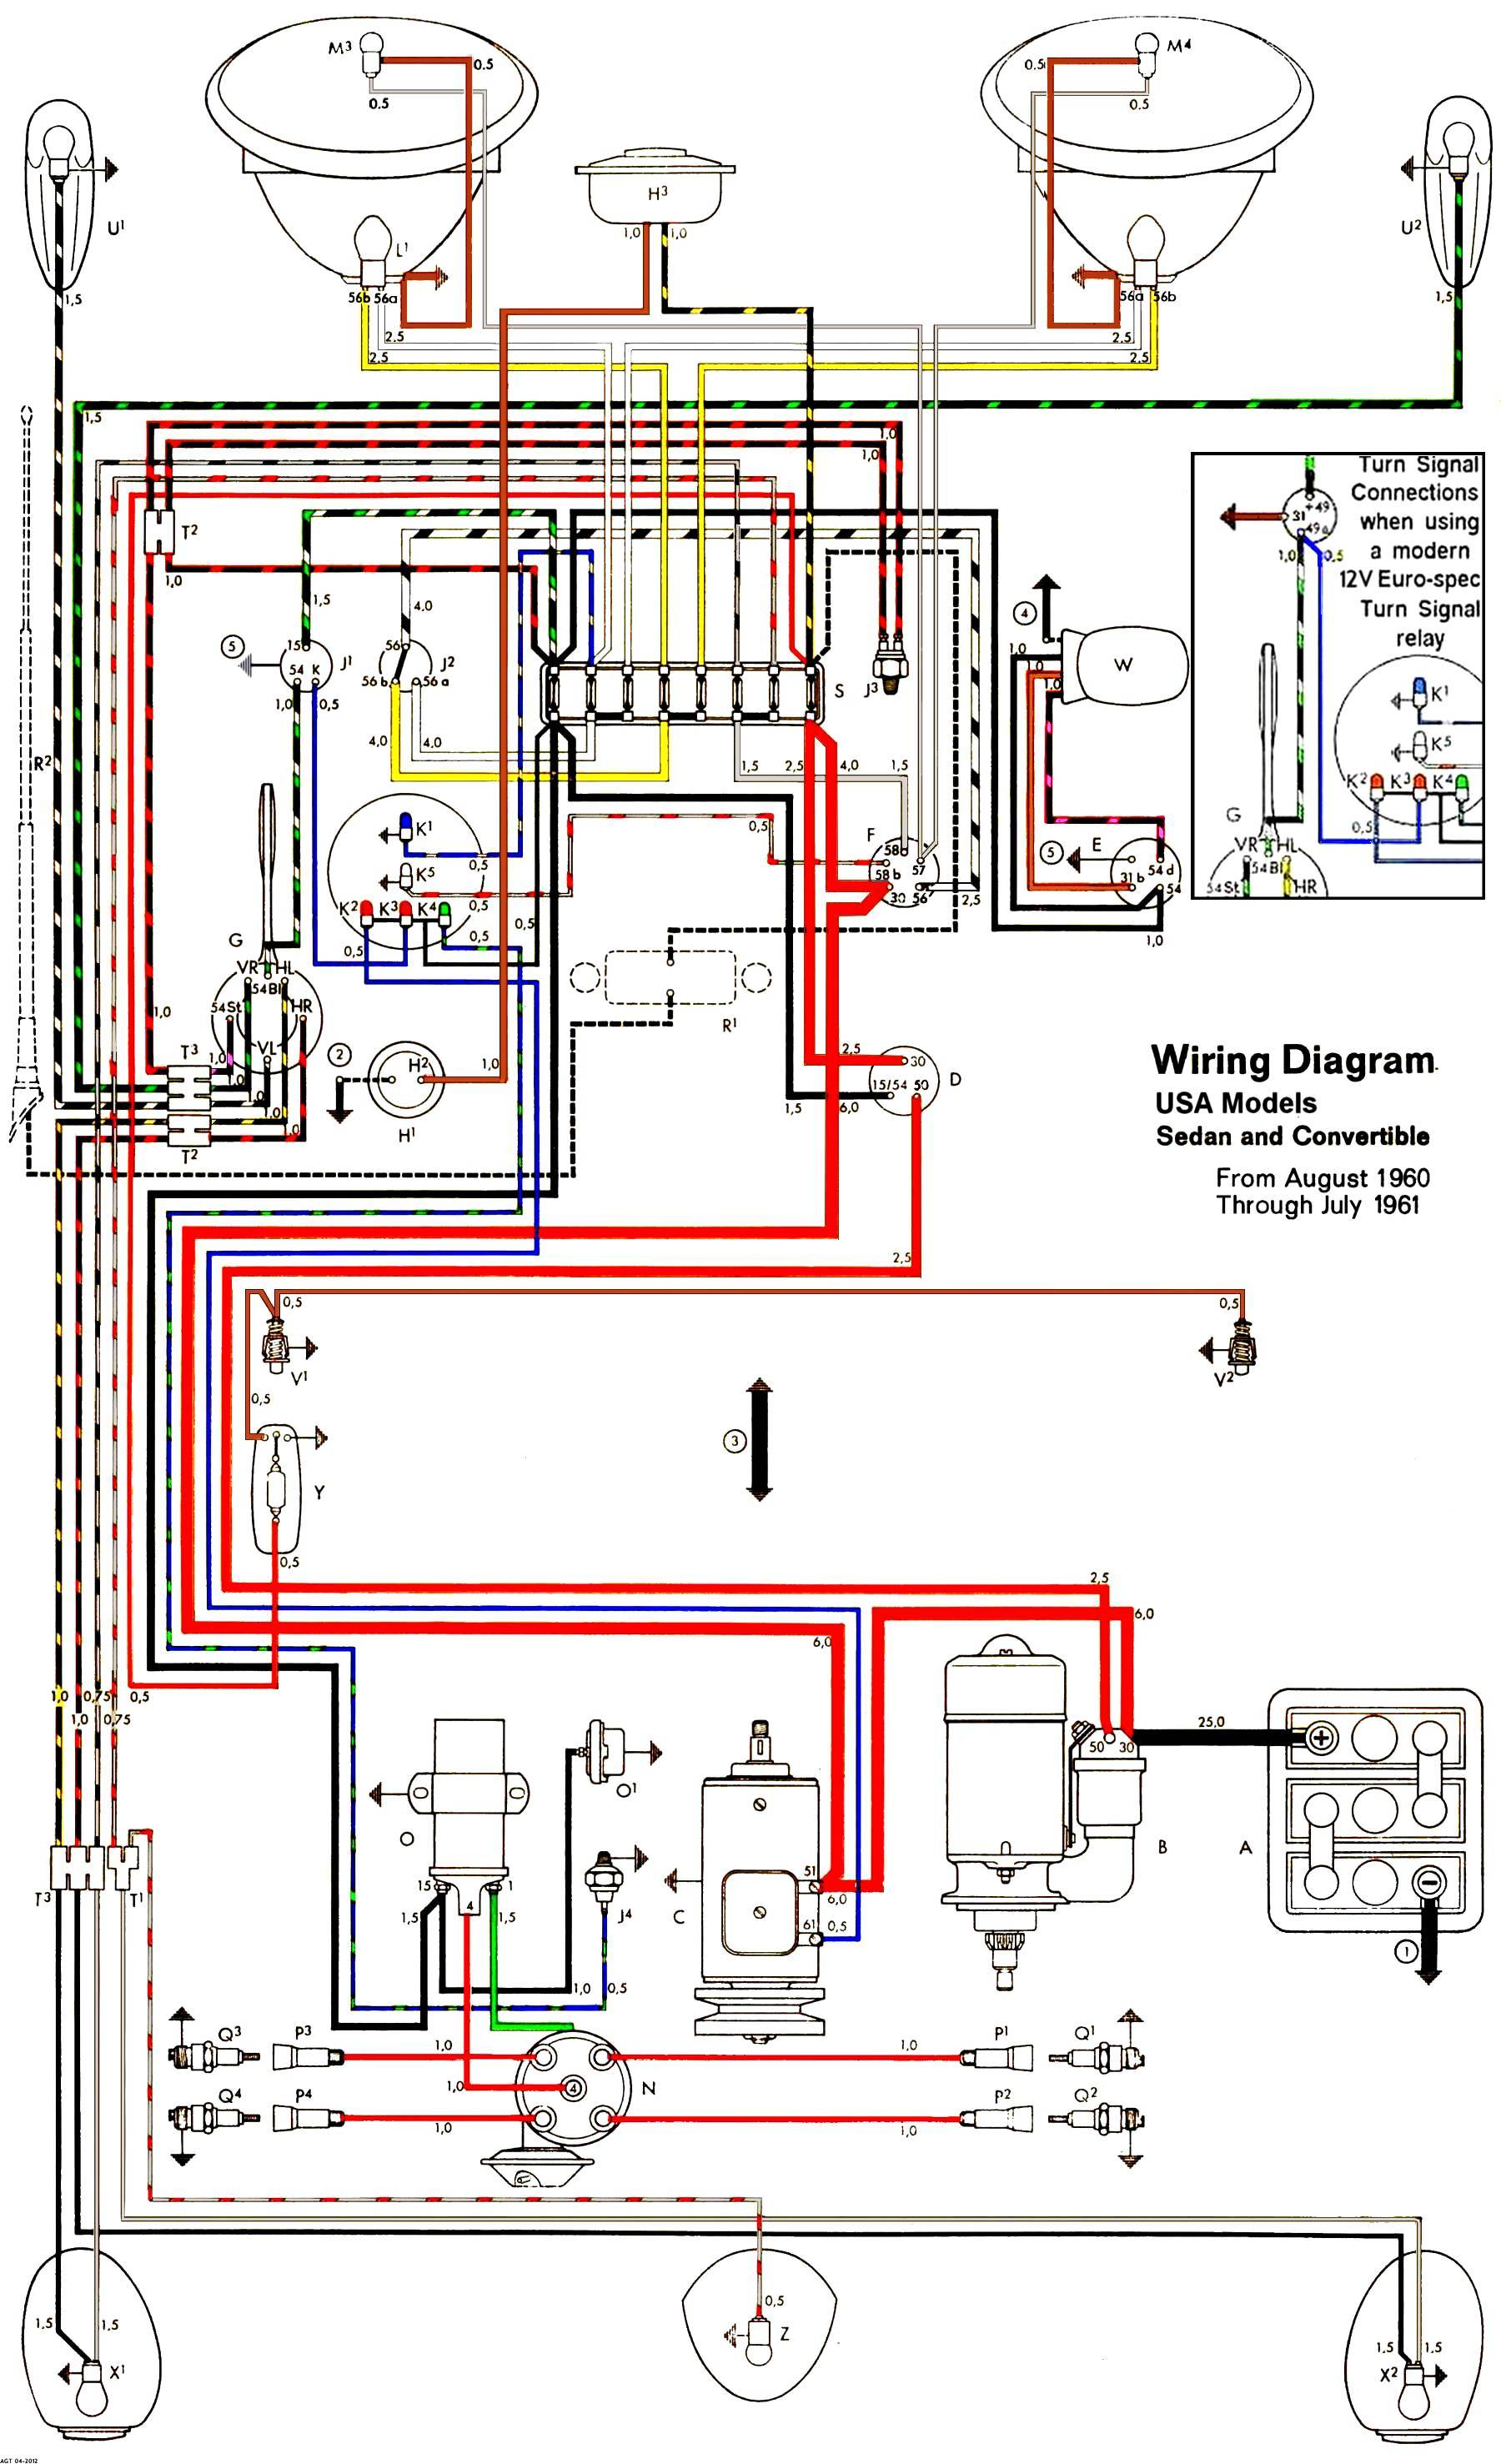 67 camaro headlight switch wiring diagram 67 camaro turn signal wiring diagram thesamba com type 1 wiring diagrams #14